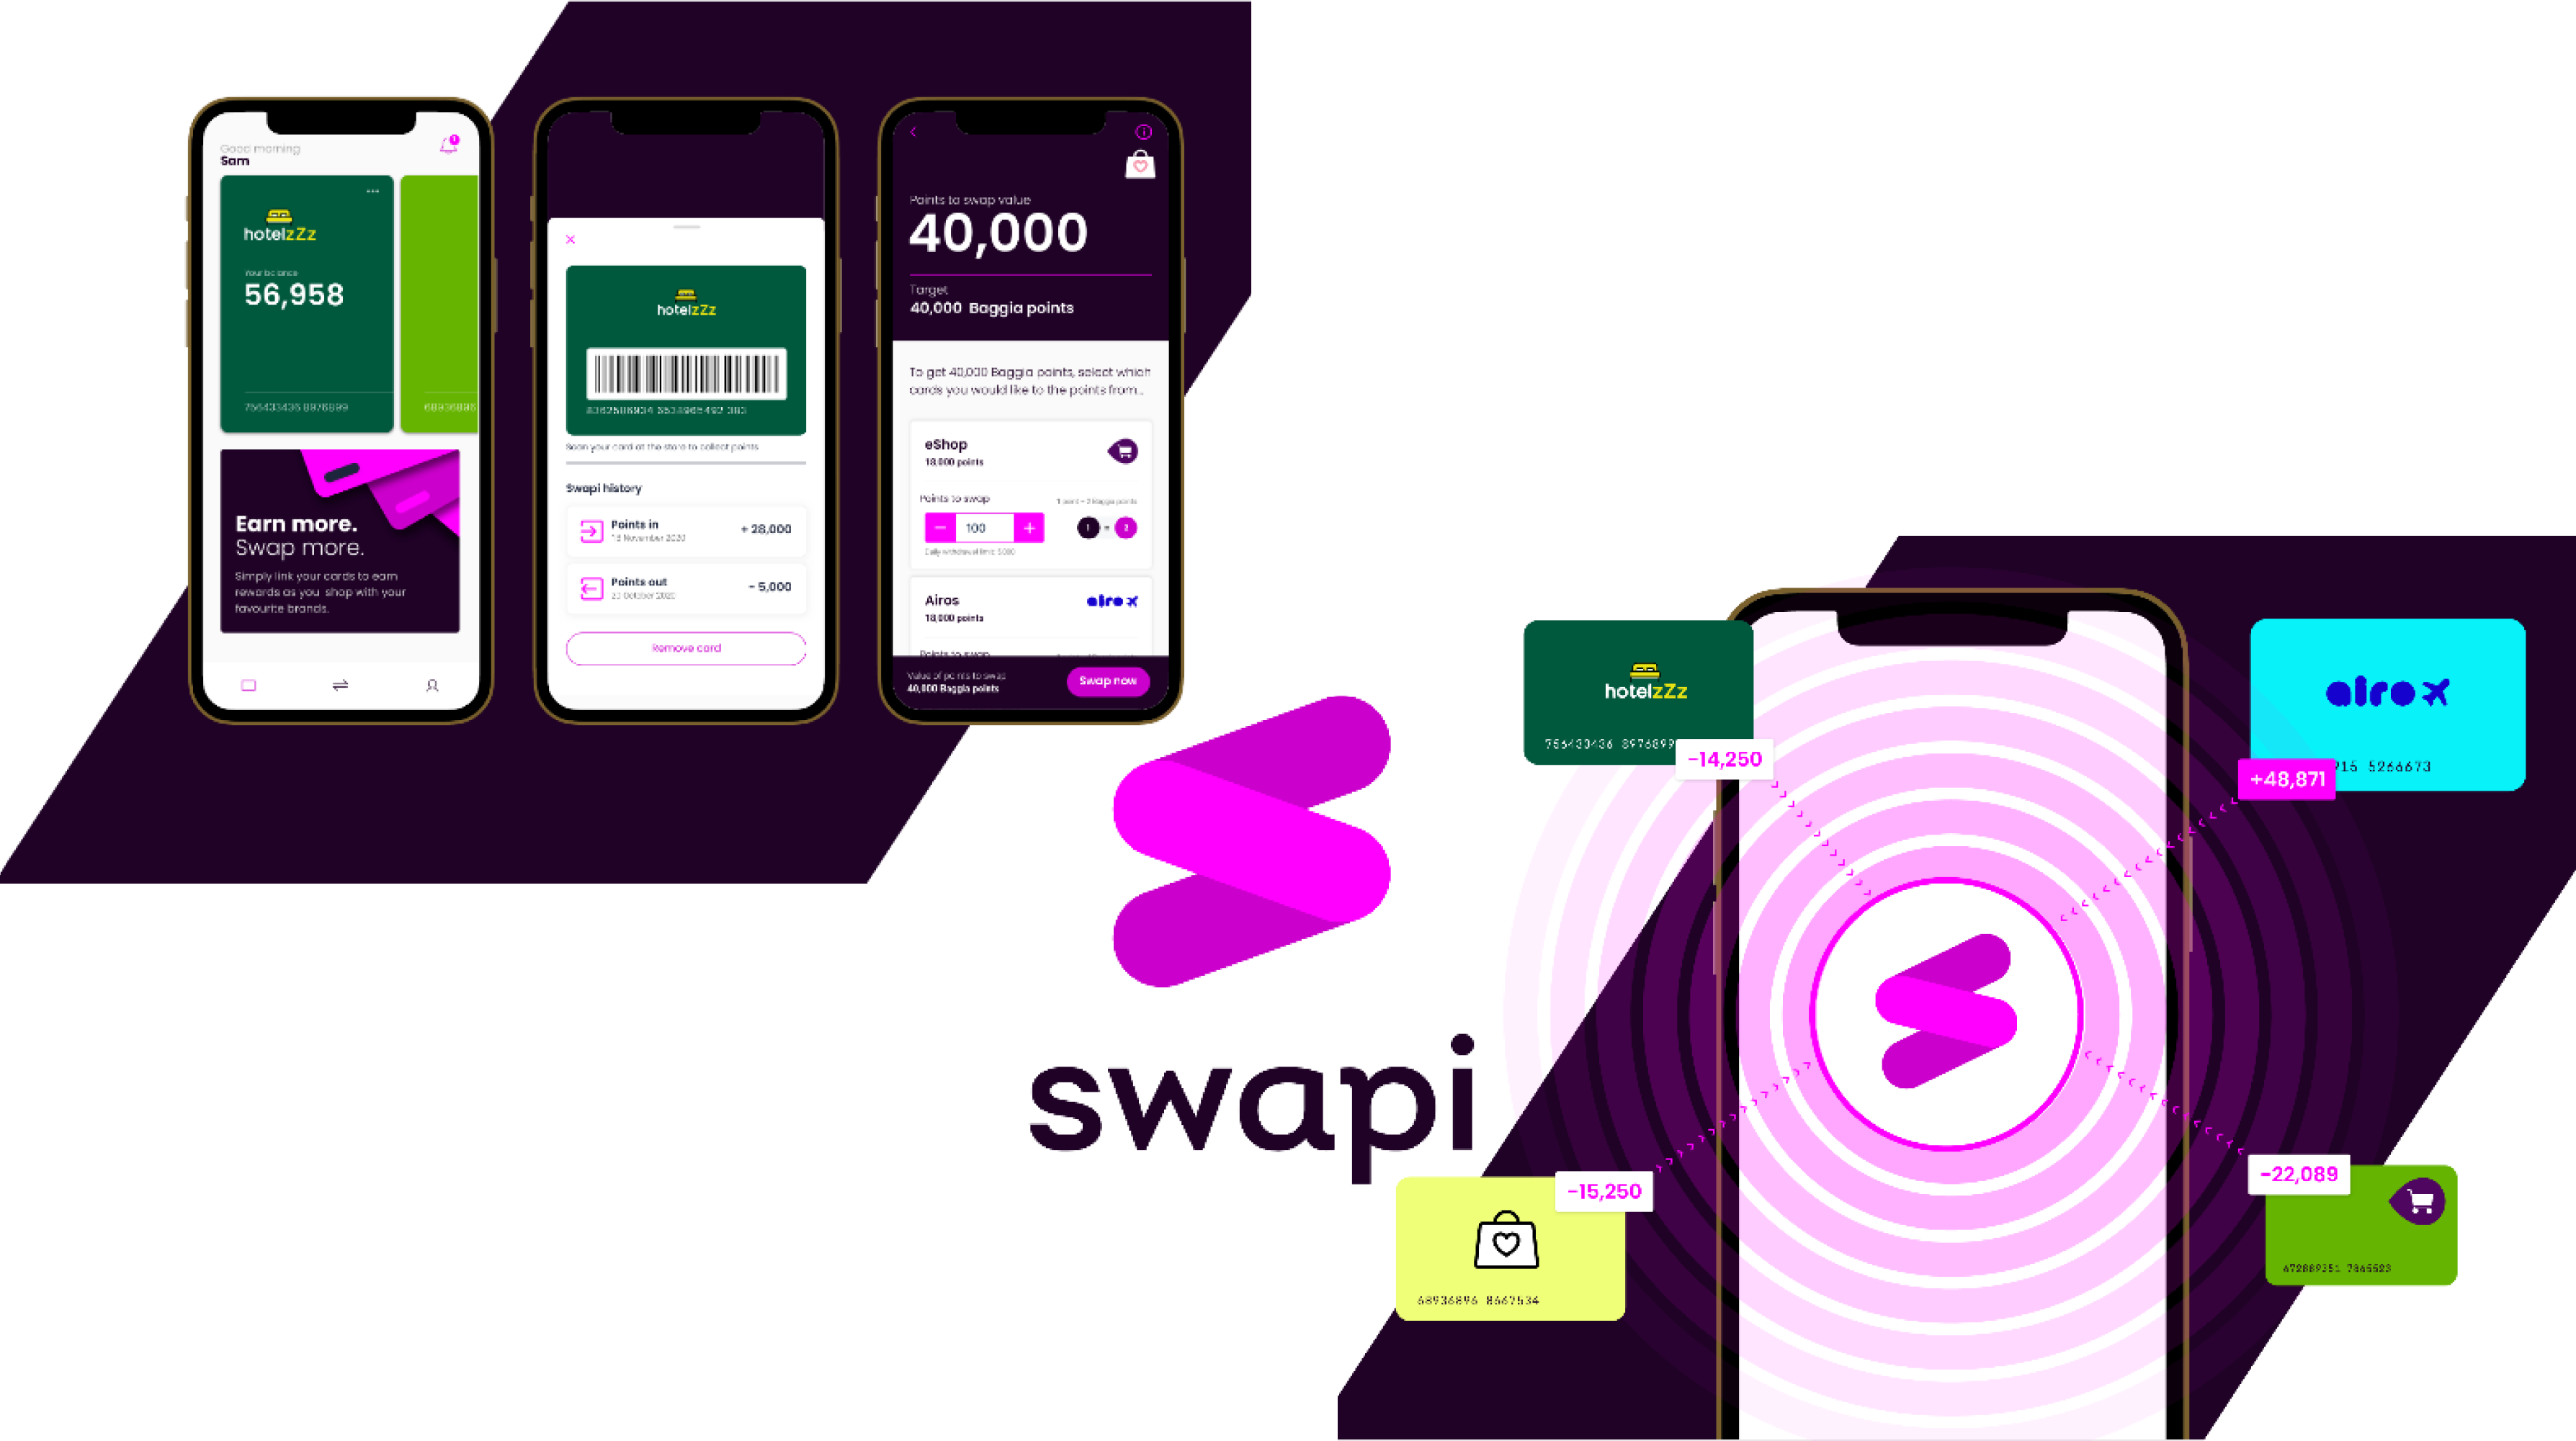 Swapi is designed to be a customer-centric experience that allows brands to clear down financial liability quickly at almost no fee and give customers richer benefits in your core system. For the redemption brand, the points marketplace is a compelling customer acquisition tool at a low CPA.